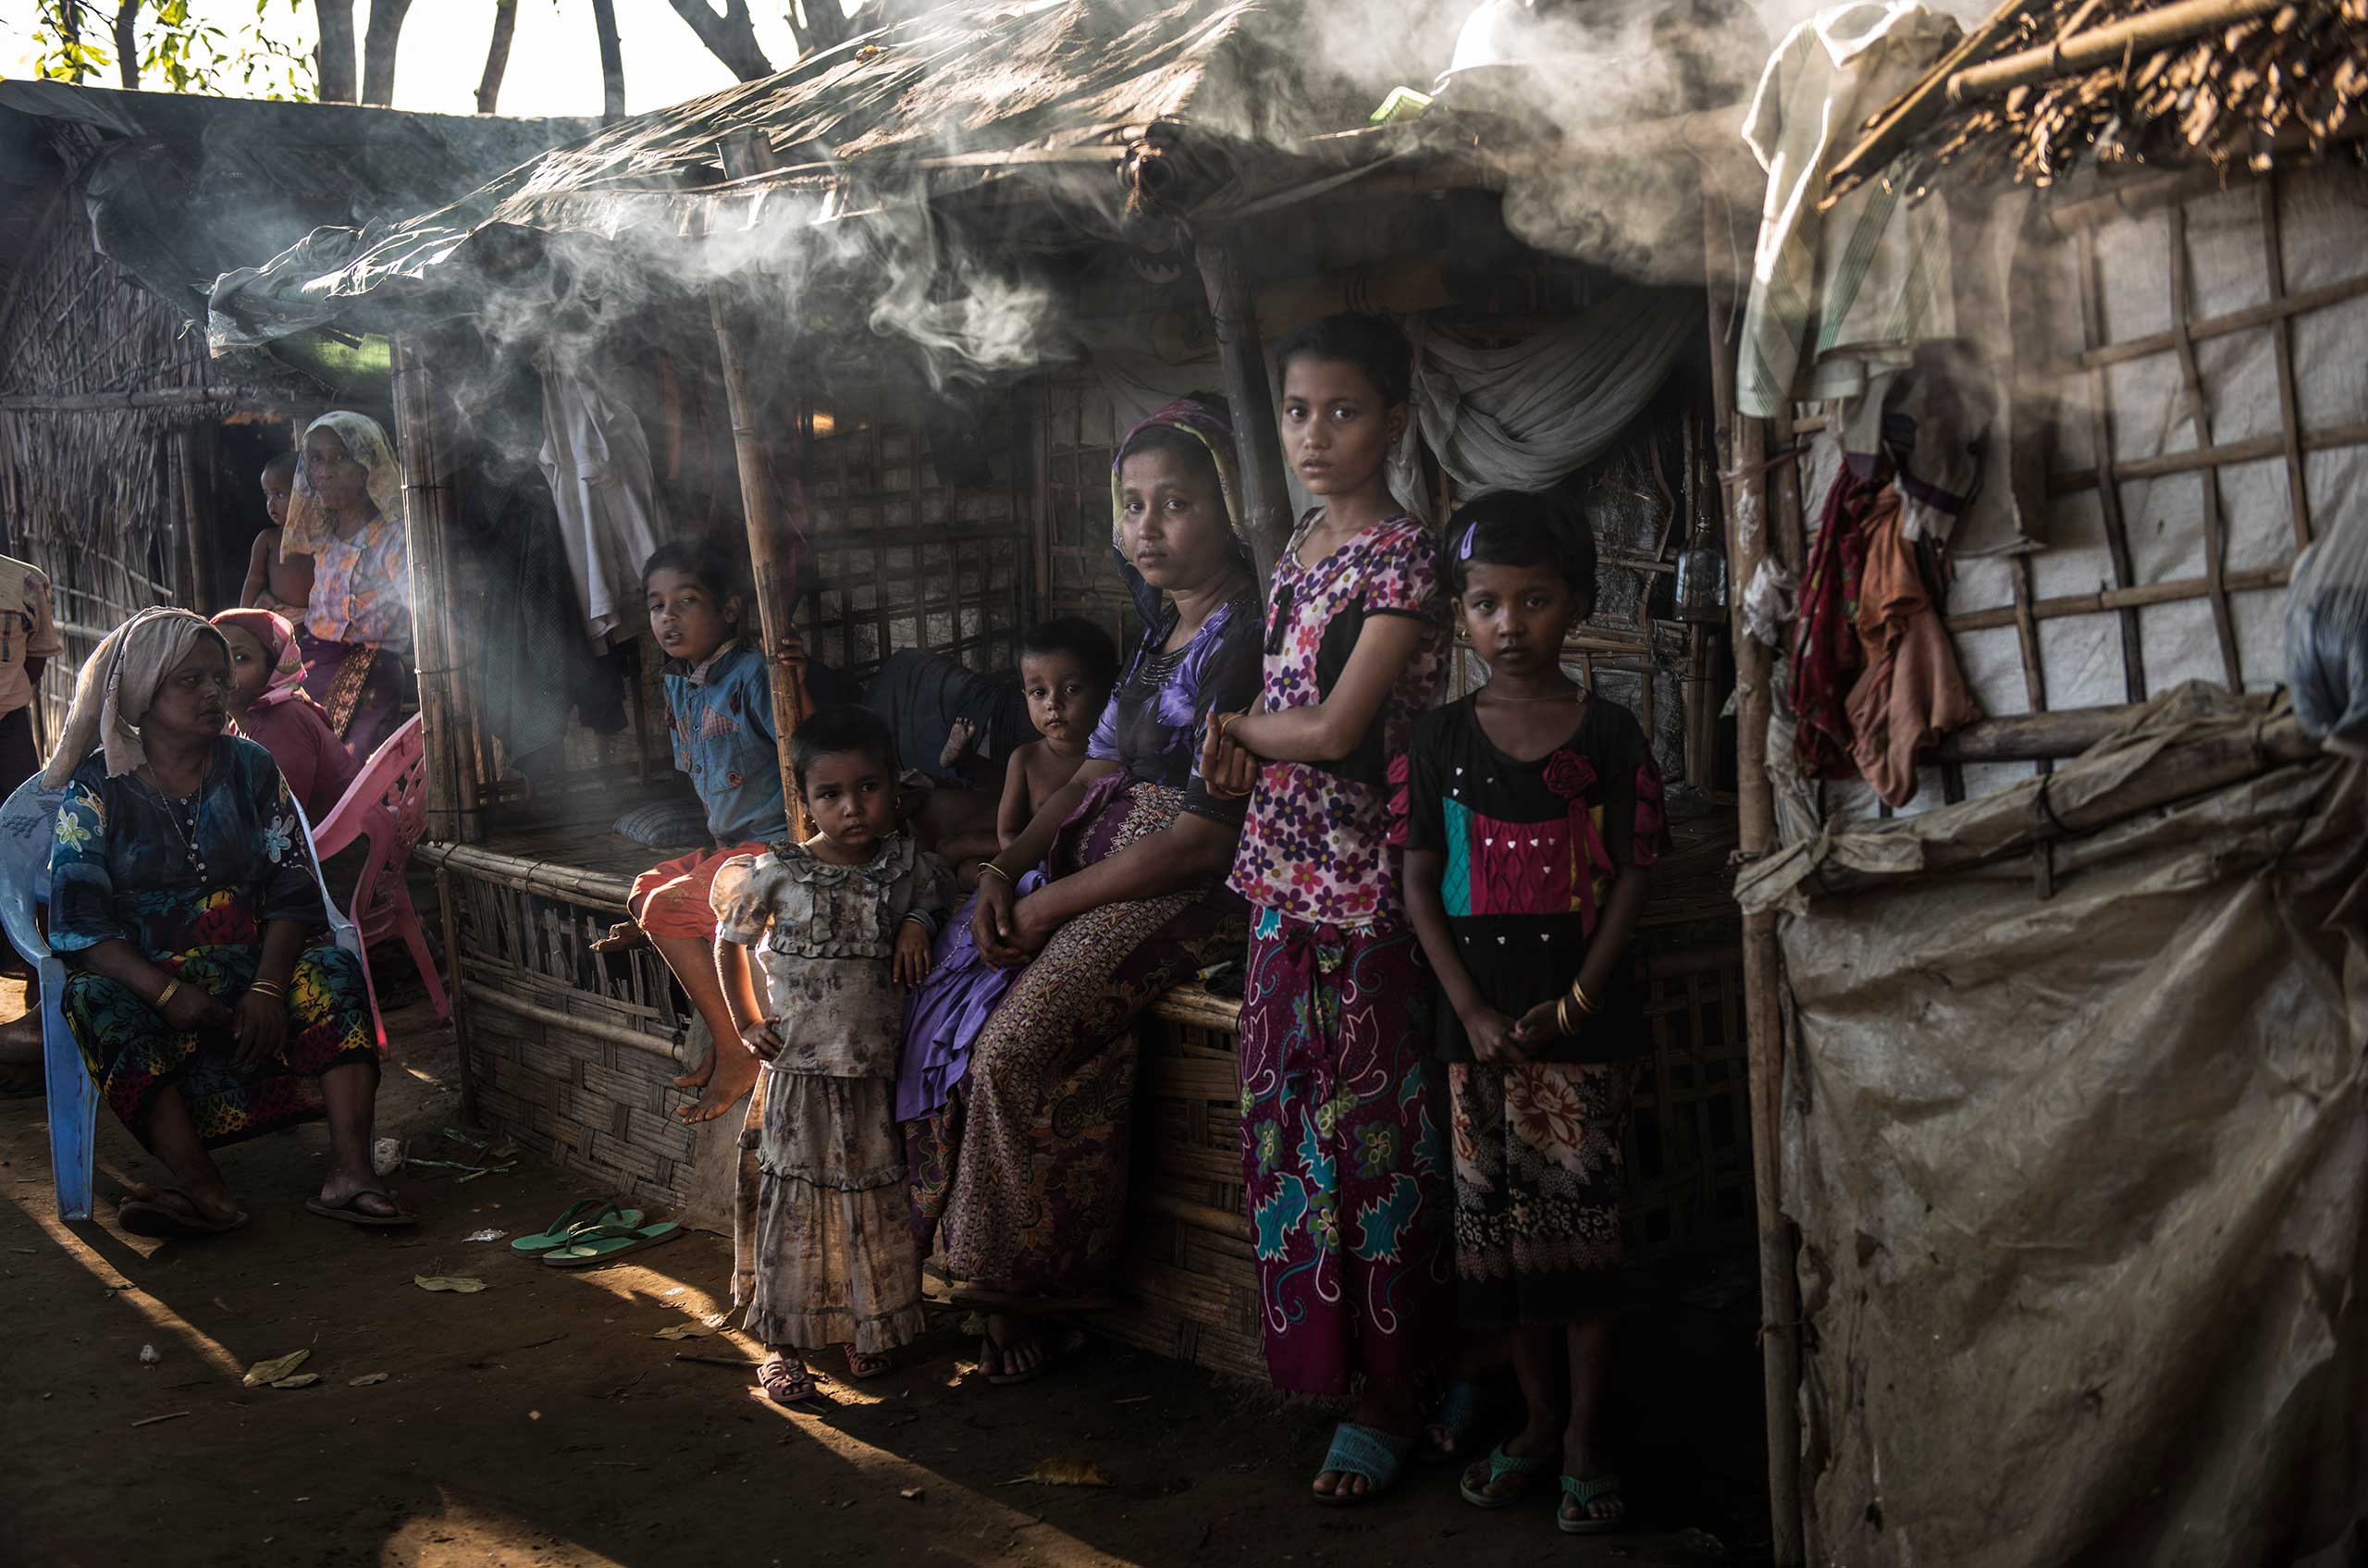 The Rohingya, Burmese Muslims, live in the Thay Chaung camp for the Internally Displaced outside of Sittwe, which houses nearly 3000 people, Nov. 23, 2015.   Mother with twin boys under cooking smoke: Kamila Begam 25, has five children and are from Than Taw Lee, about five miles away from the Thay Chang camp where they are currently living. Standing by smoke: Halima Katu, 10, flowered top, and Khotiza Kata, 6, black top with red and green flowers.